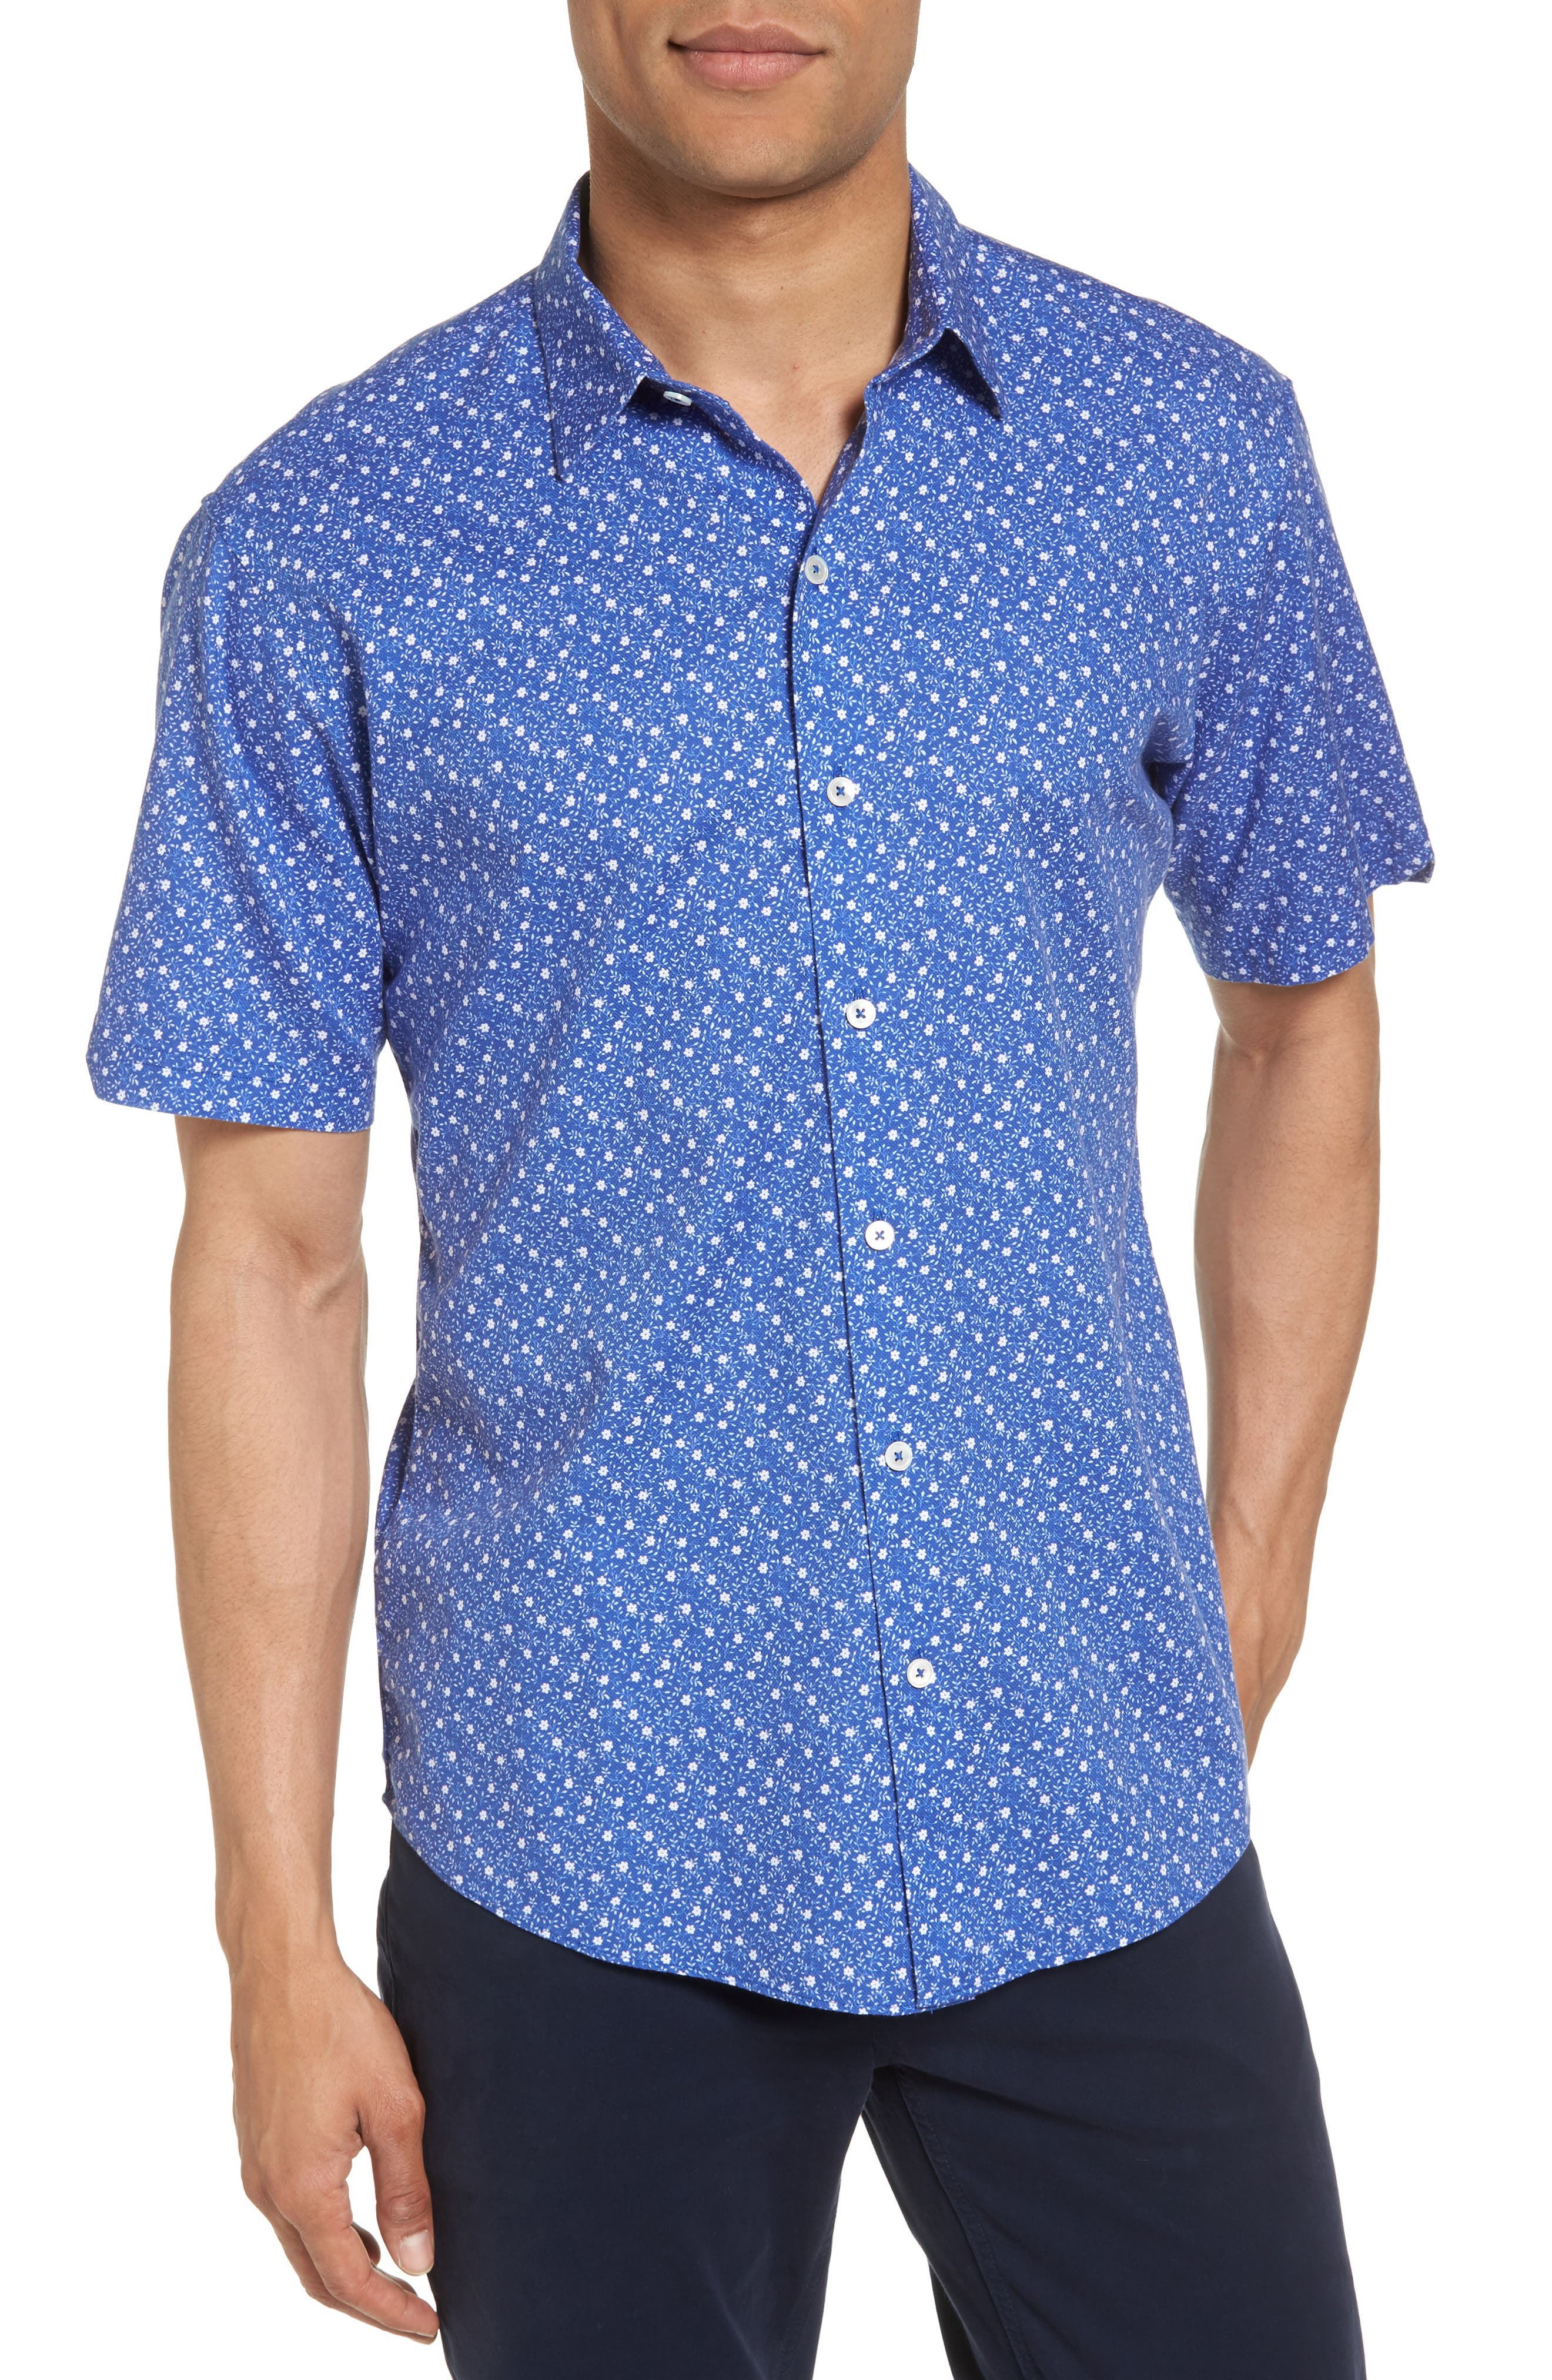 Main Image - Zachary Prell Floral Print Short Sleeve Sport Shirt